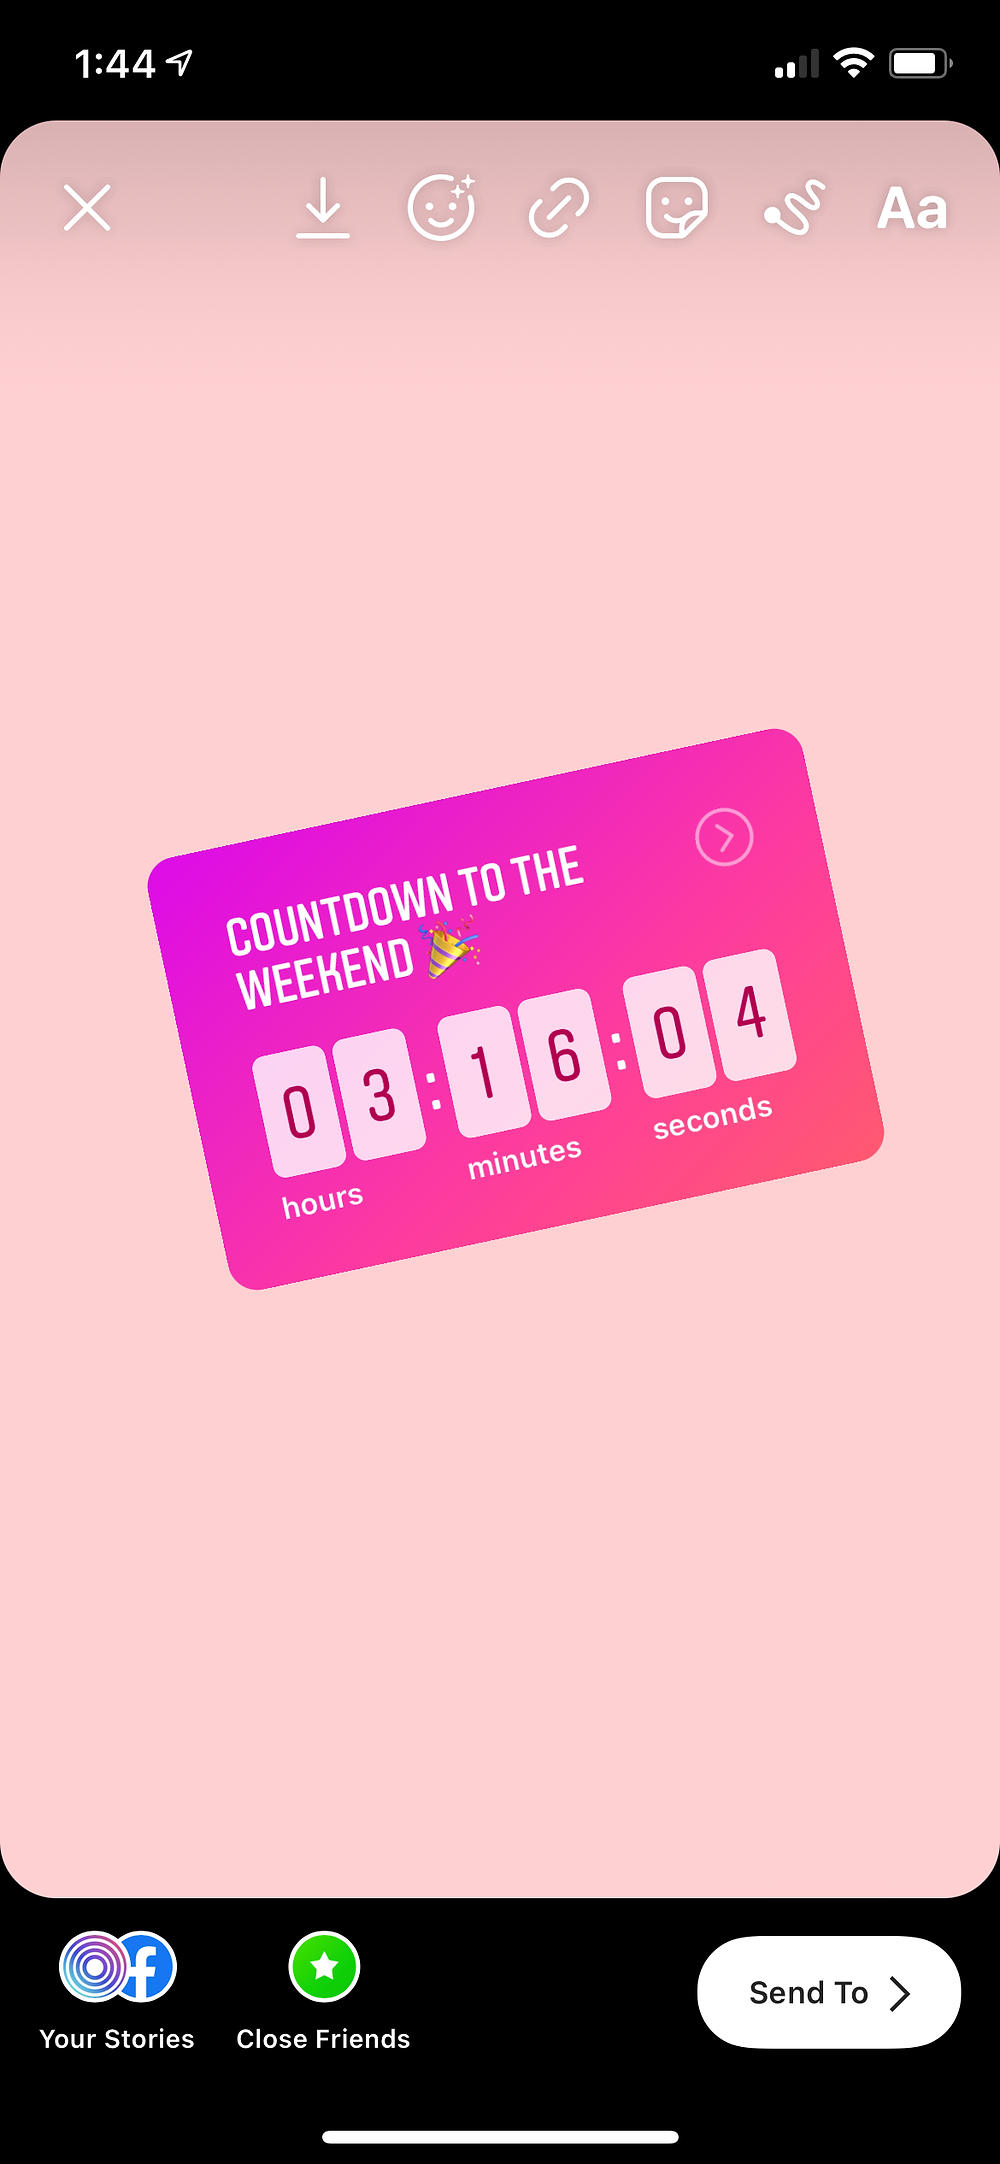 Instagram countdown to the weekend example on Ripl